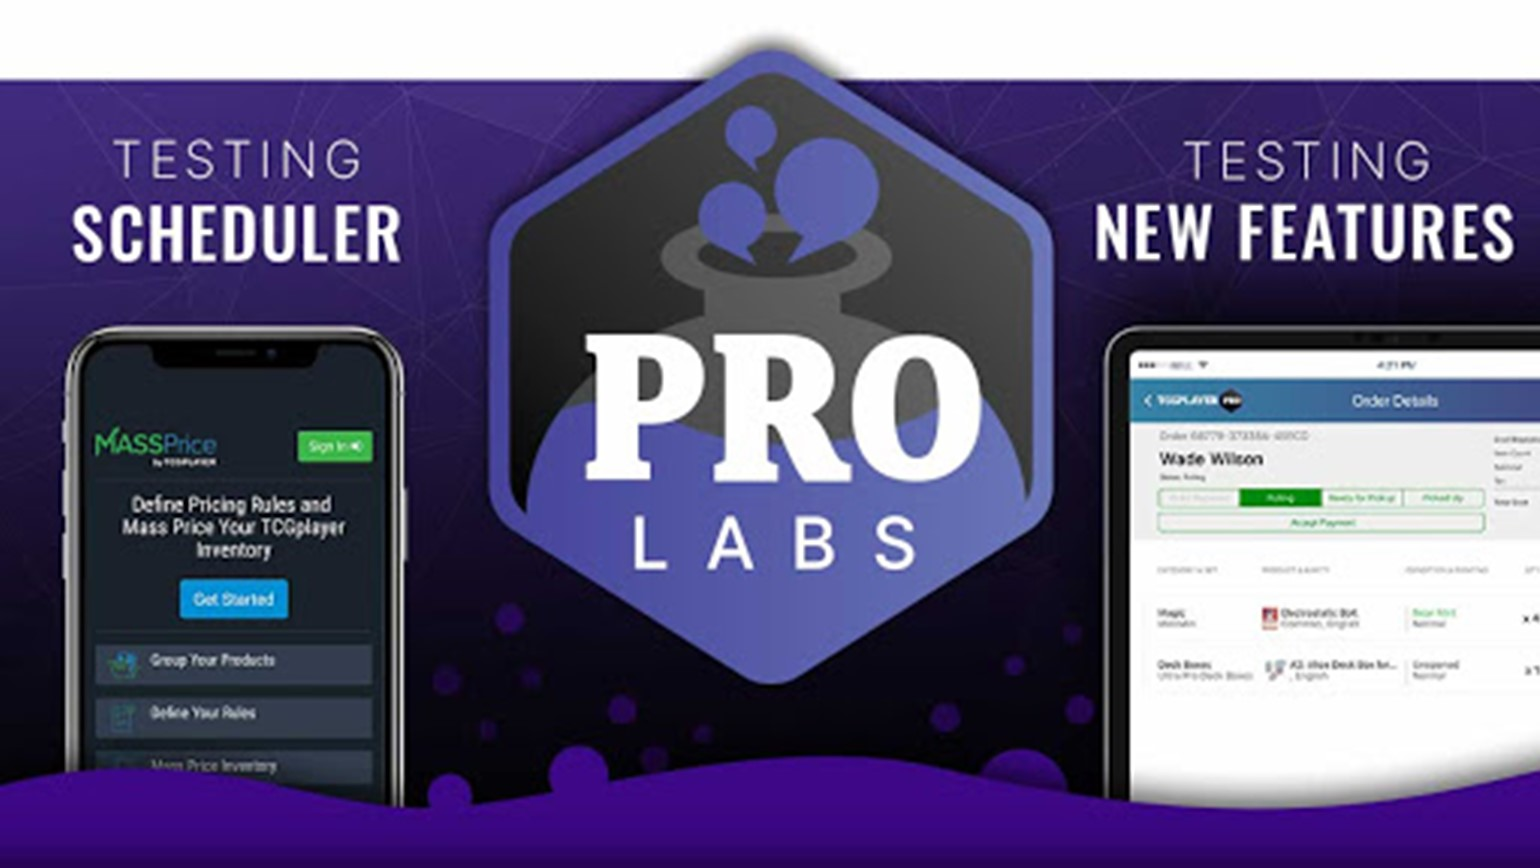 Upcoming Pro Labs: Automate Pricing, New Kiosk Experience and More!